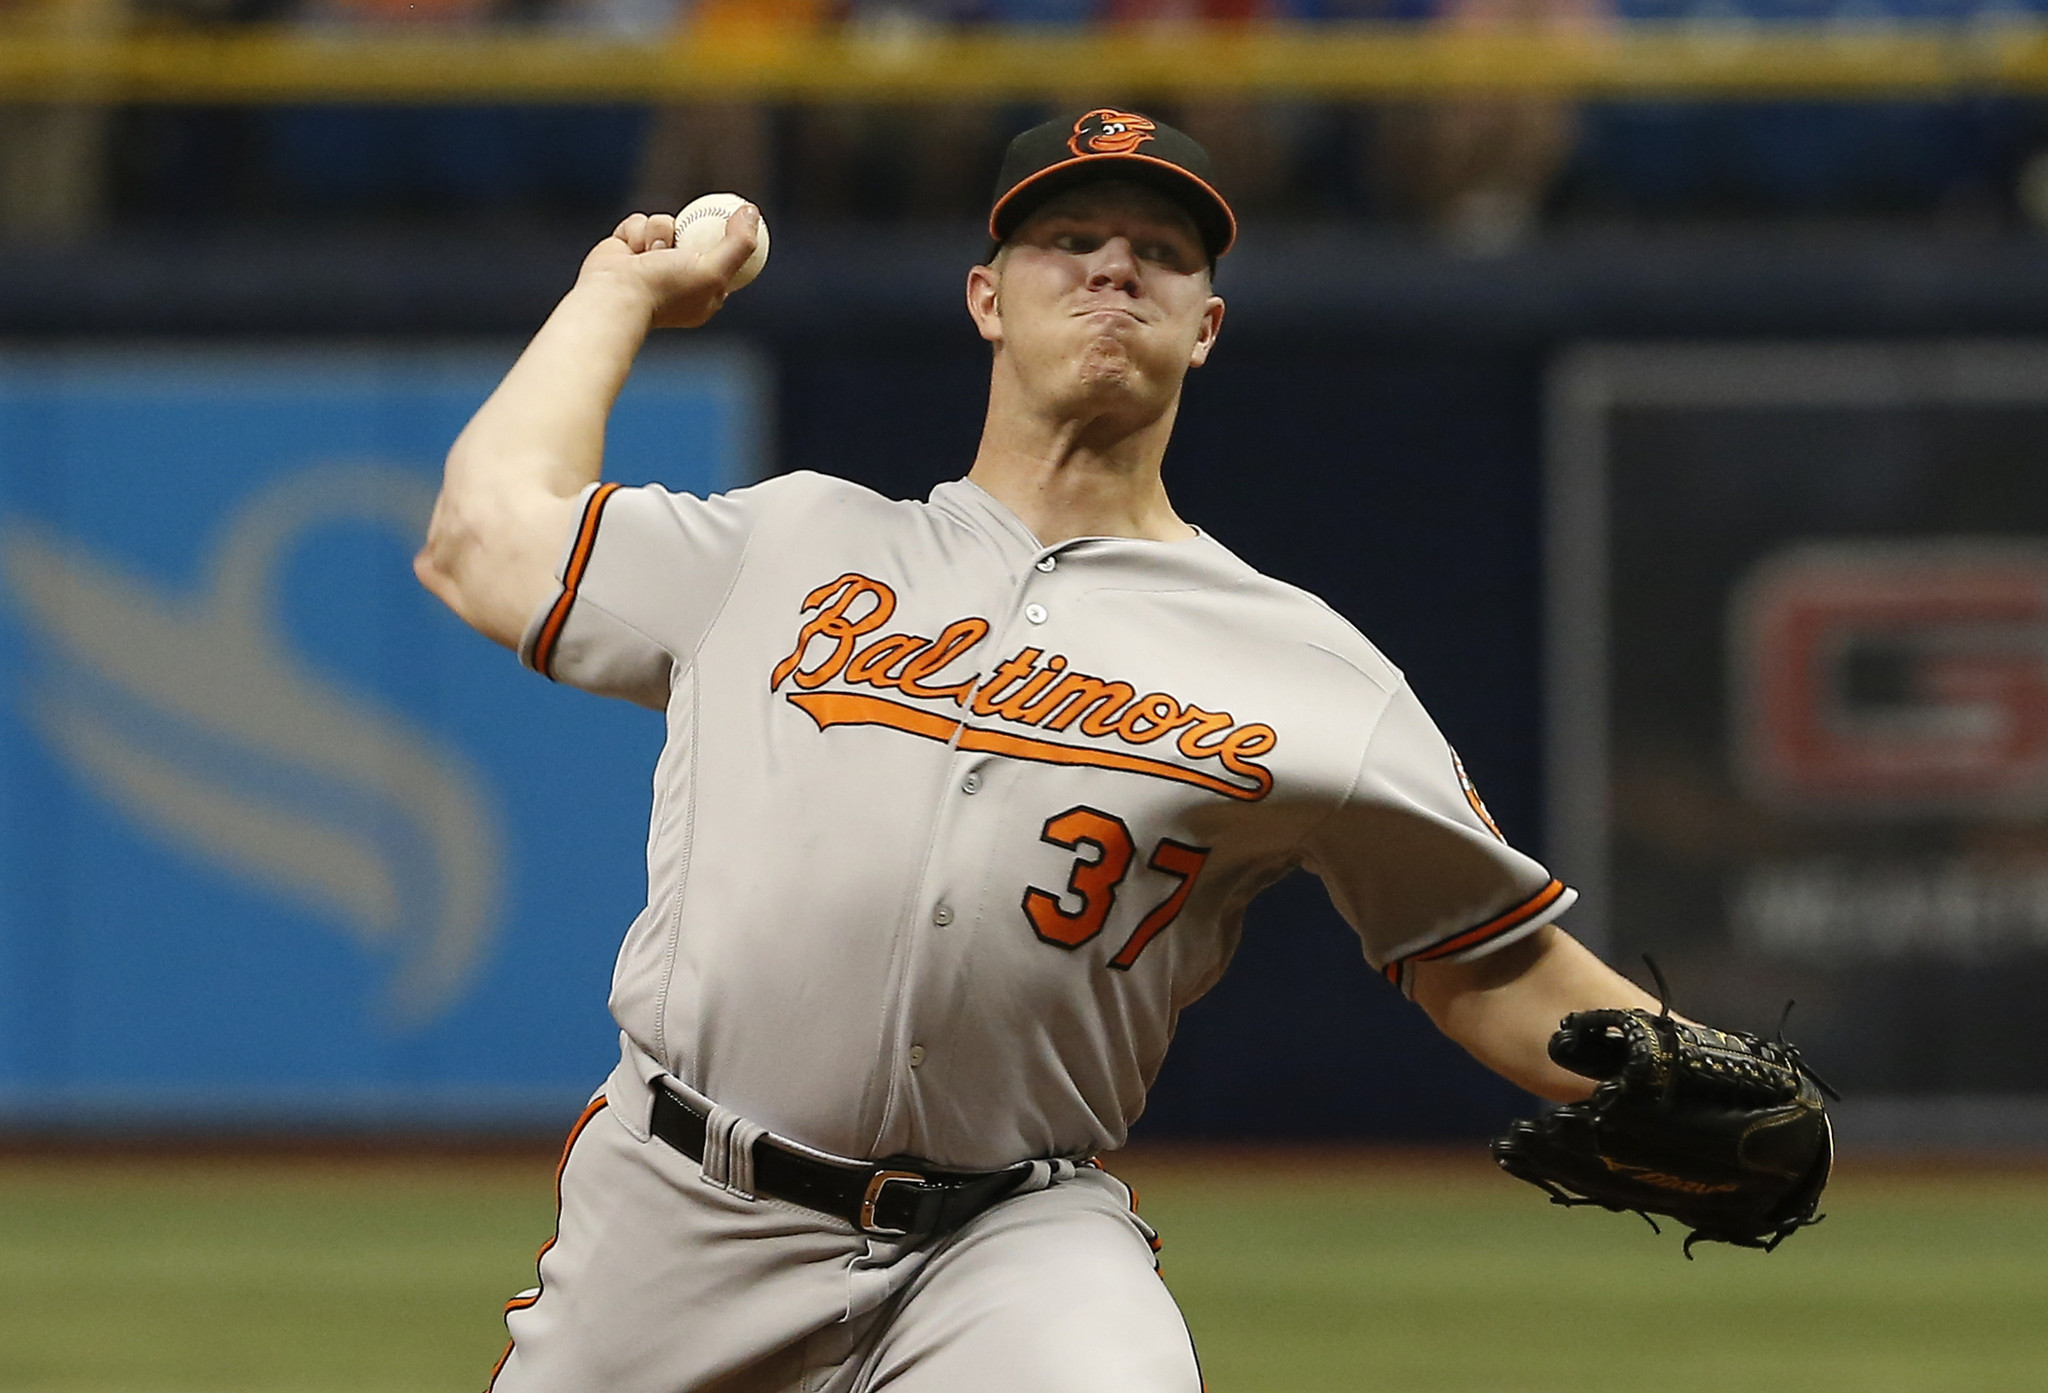 Bal-orioles-happy-to-be-home-looking-at-improvement-in-the-rotation-20160722